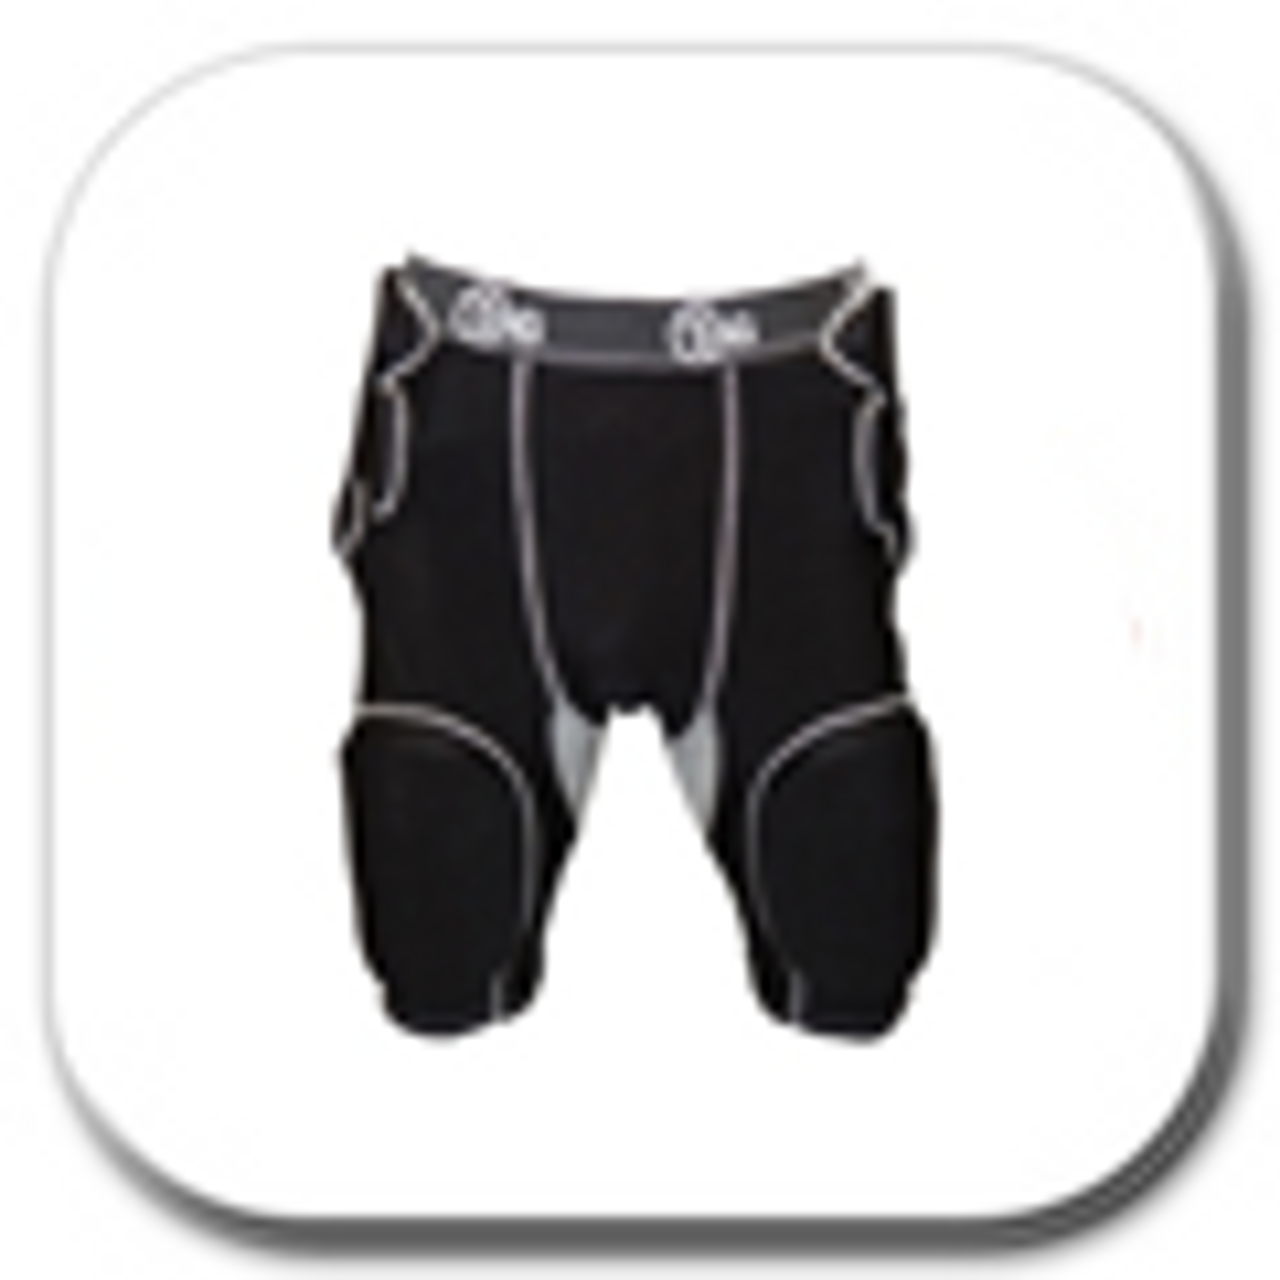 Sizes: Youth, Adult Football Lightweight Molded Foam Knee Pads for Slotted Football Pants